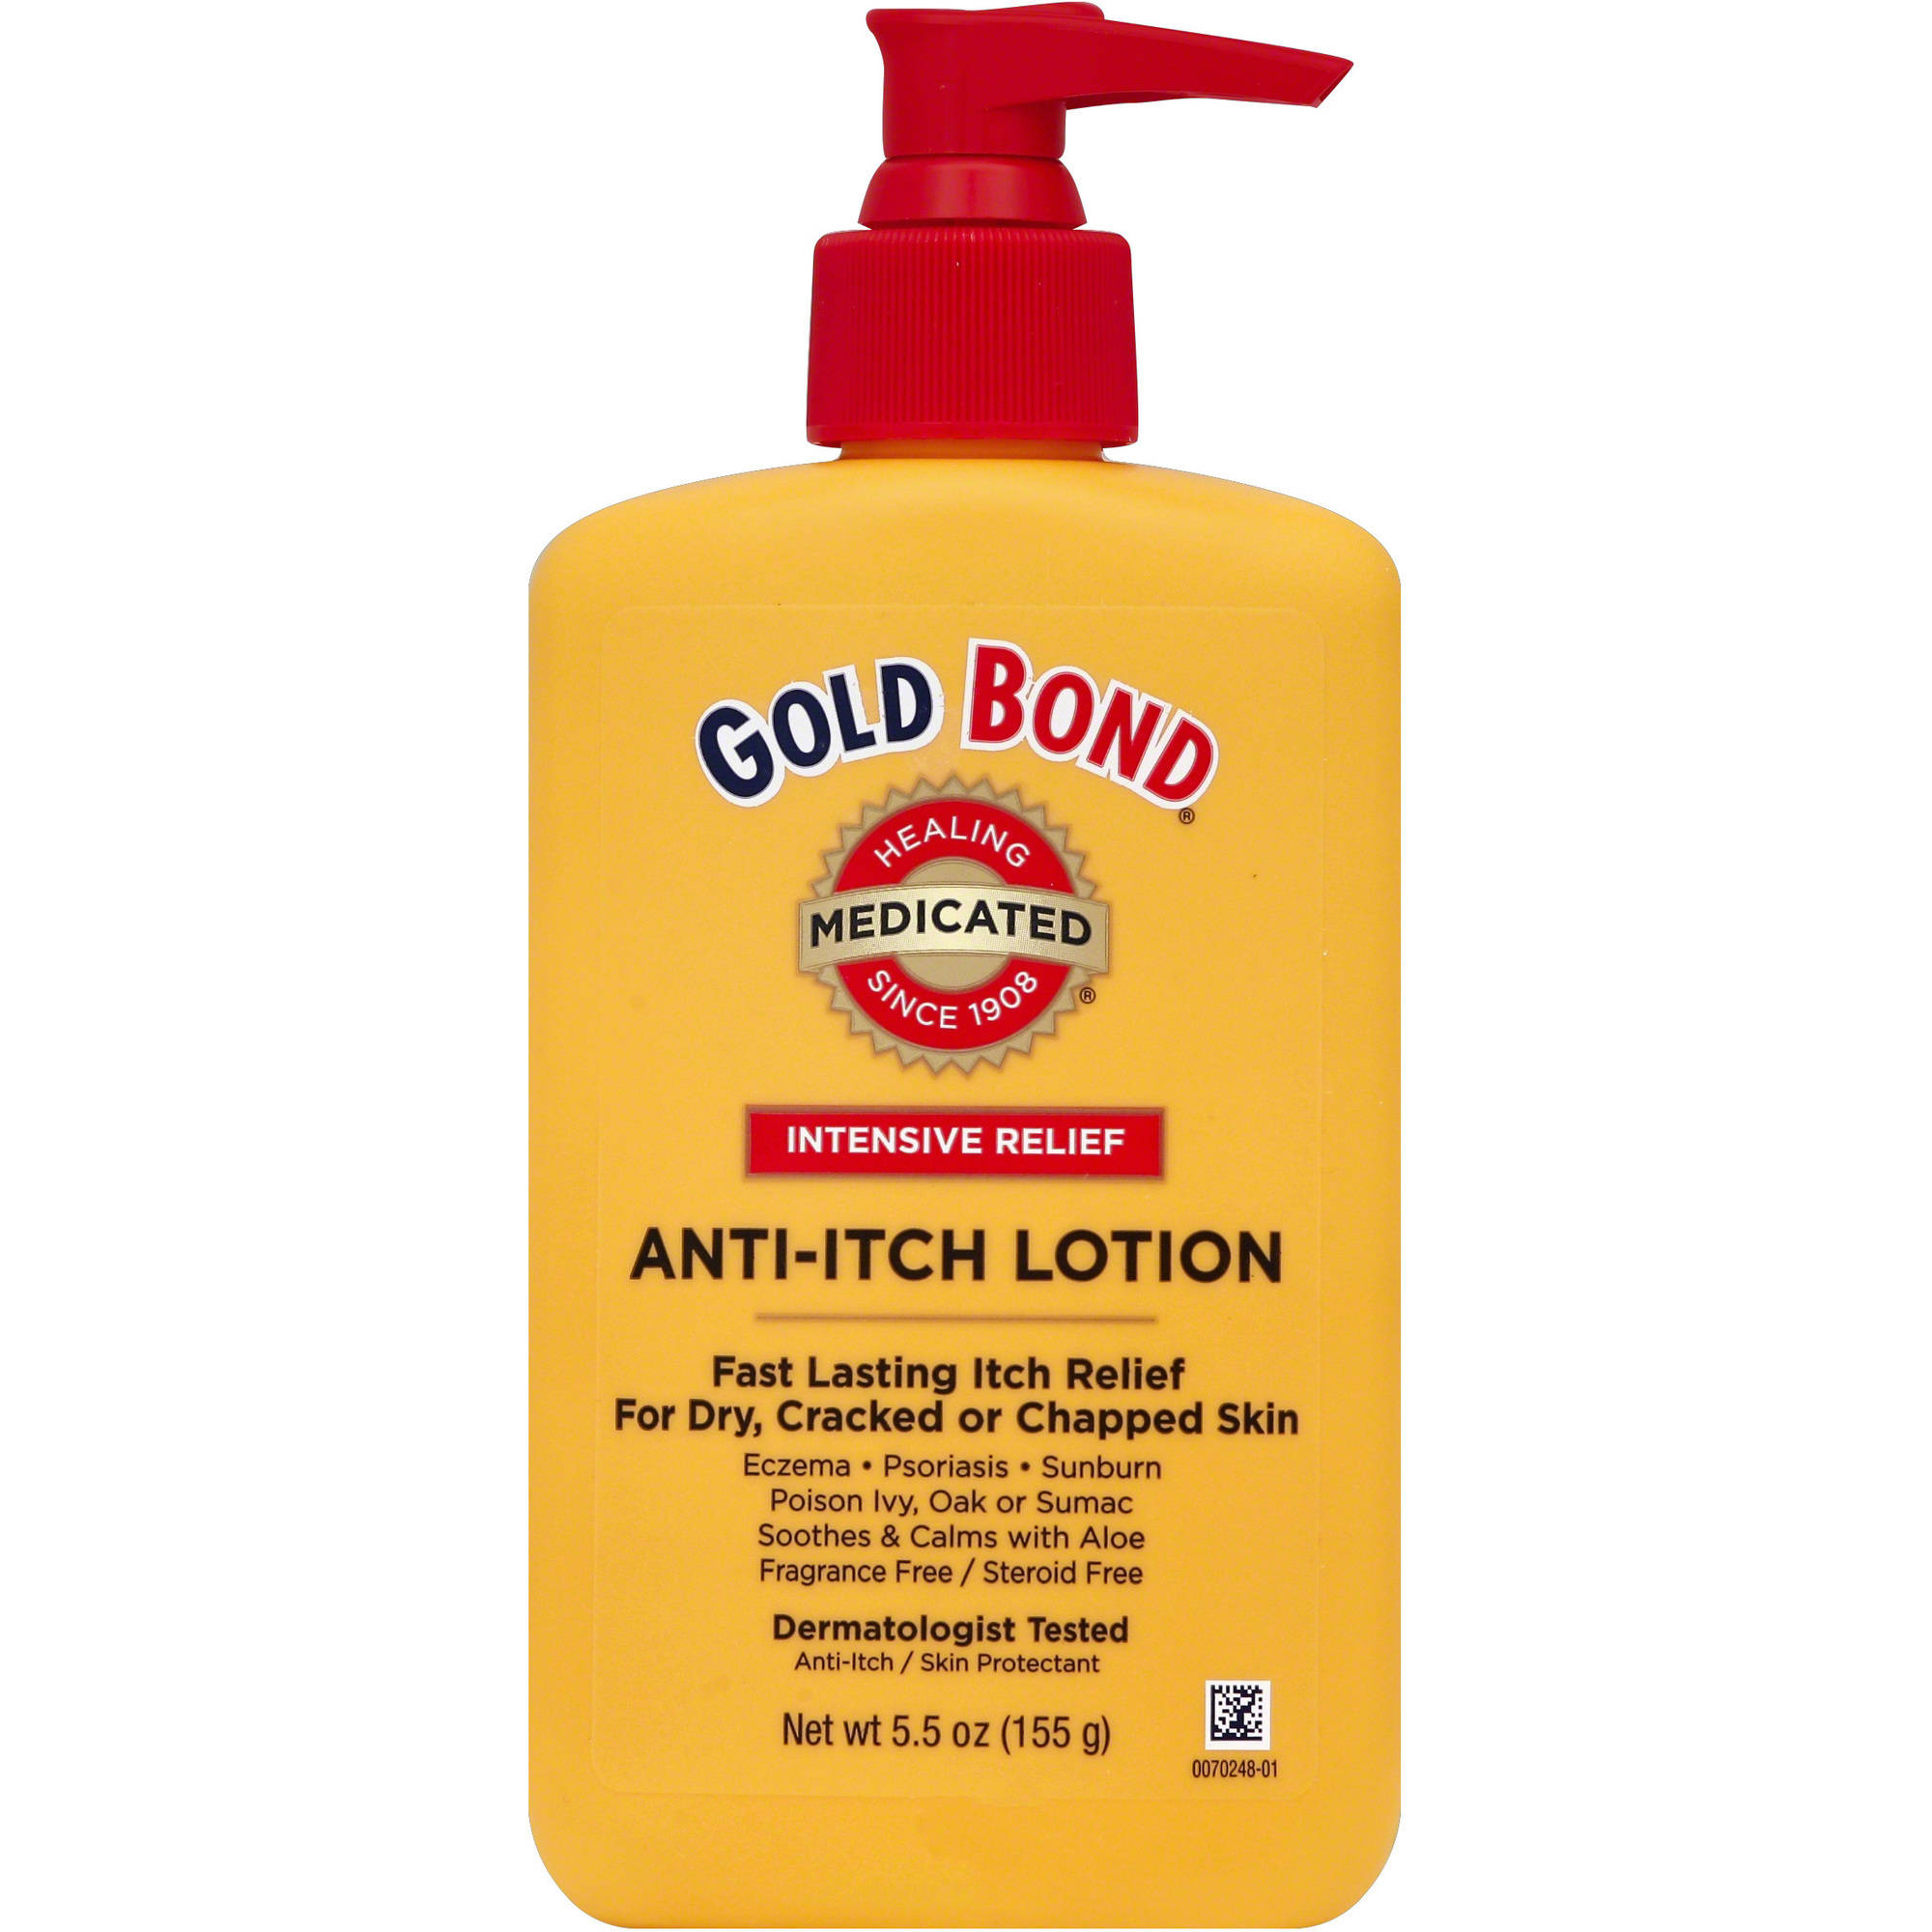 Gold Bond Medicated Anti-Itch Lotion, 5.5 oz